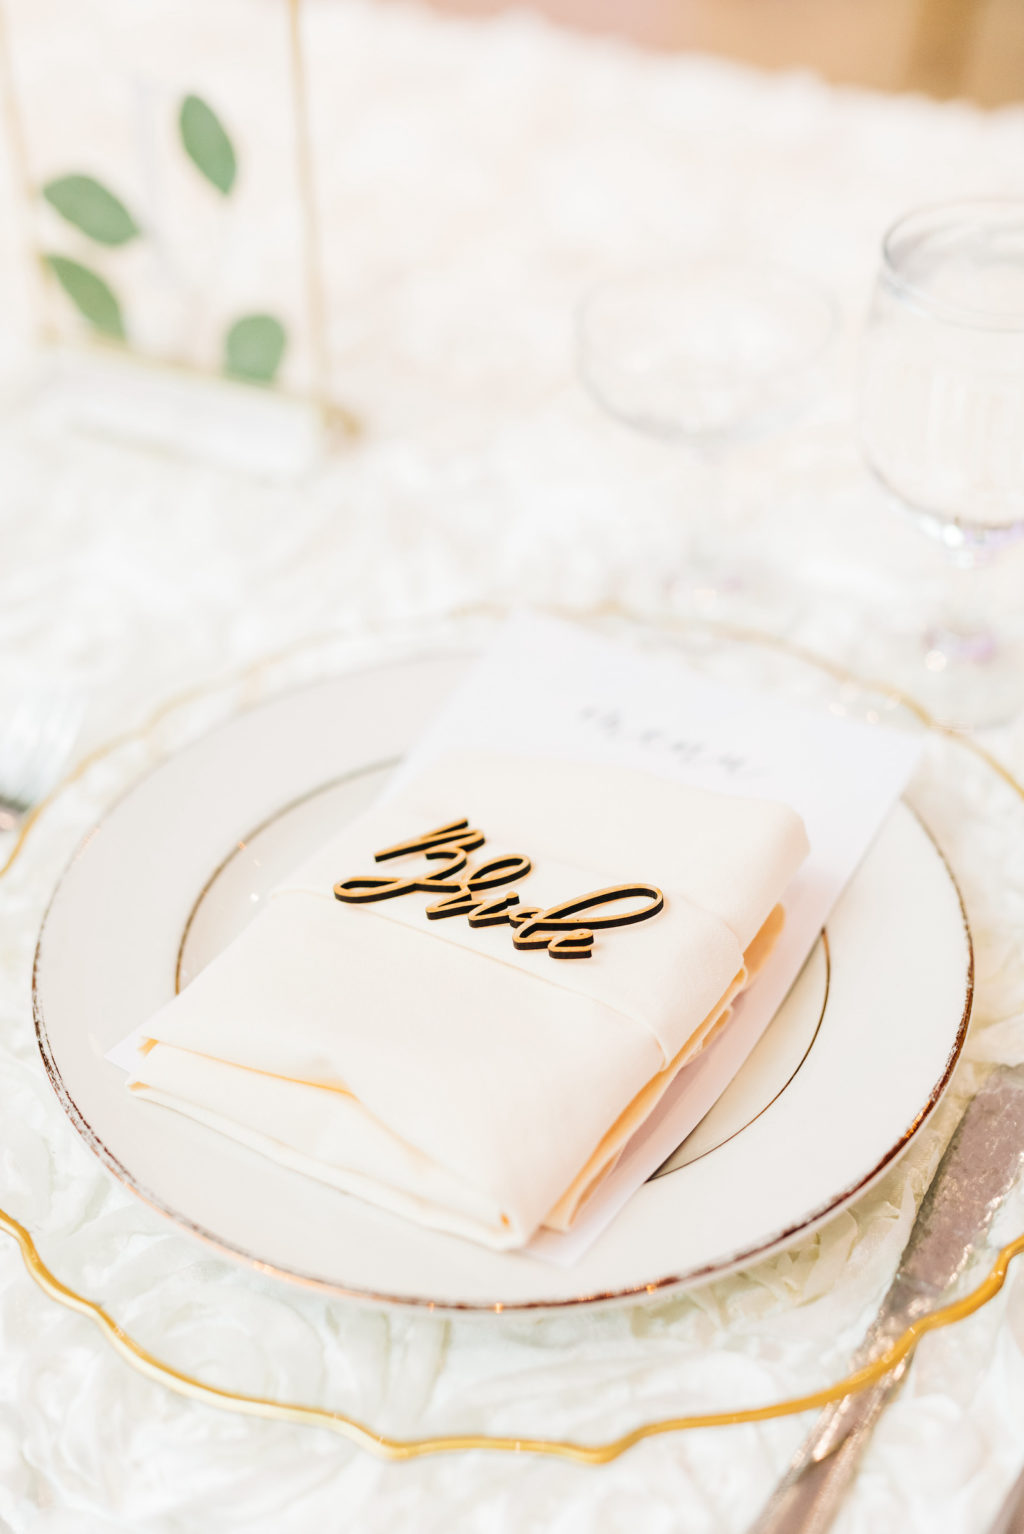 Elegant Garden Wedding Reception Decor, Long Feasting Table with White Floral Table Linen, Scalloped Gold and Clear Charger, Blush Pink Linen Napkin, Laser Cut Name Place Card   Tampa Bay Wedding Rentals Kate Ryan Event Rentals